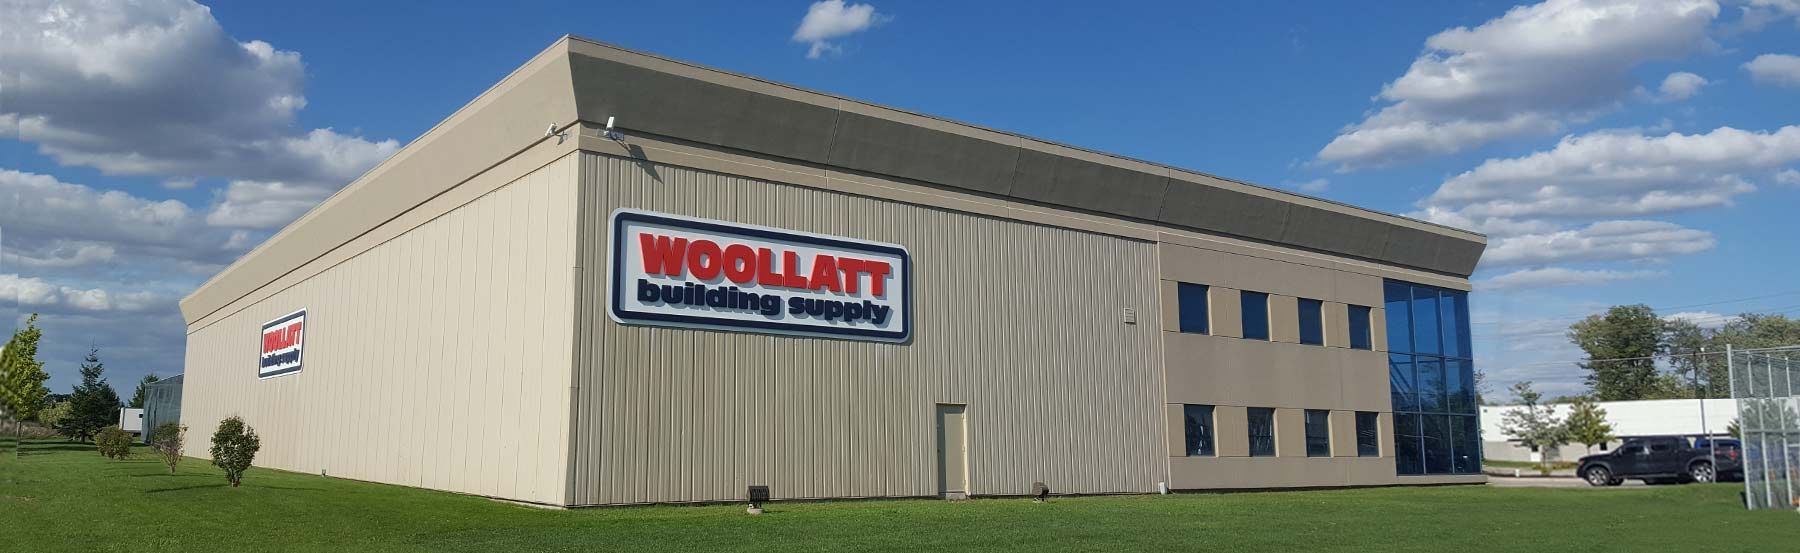 Woollatt Building Supply building